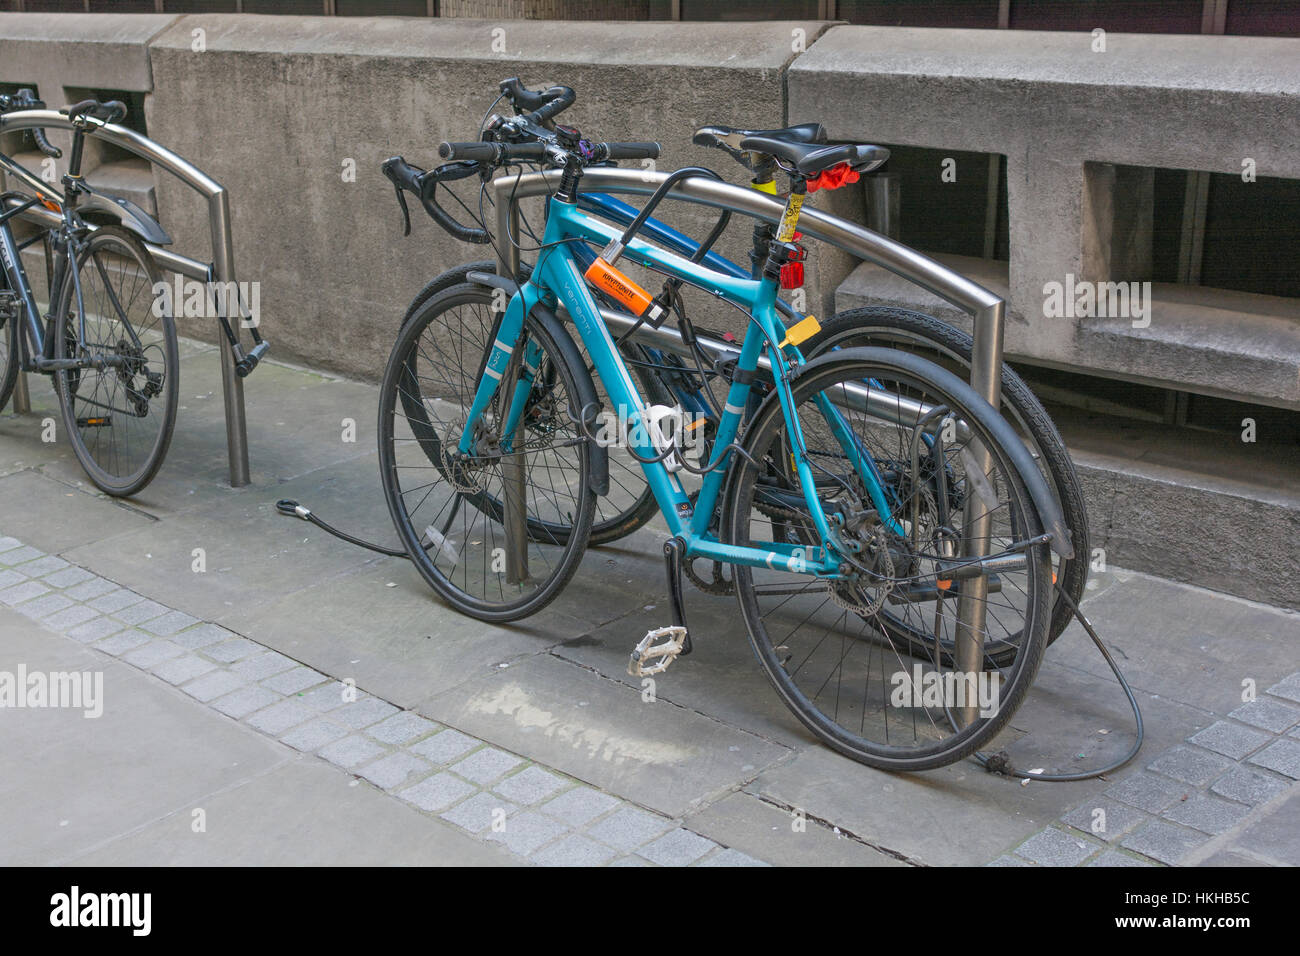 Cycle rack / rank in the City of London financial district. Metaphor for getting around London, working in London, - Stock Image